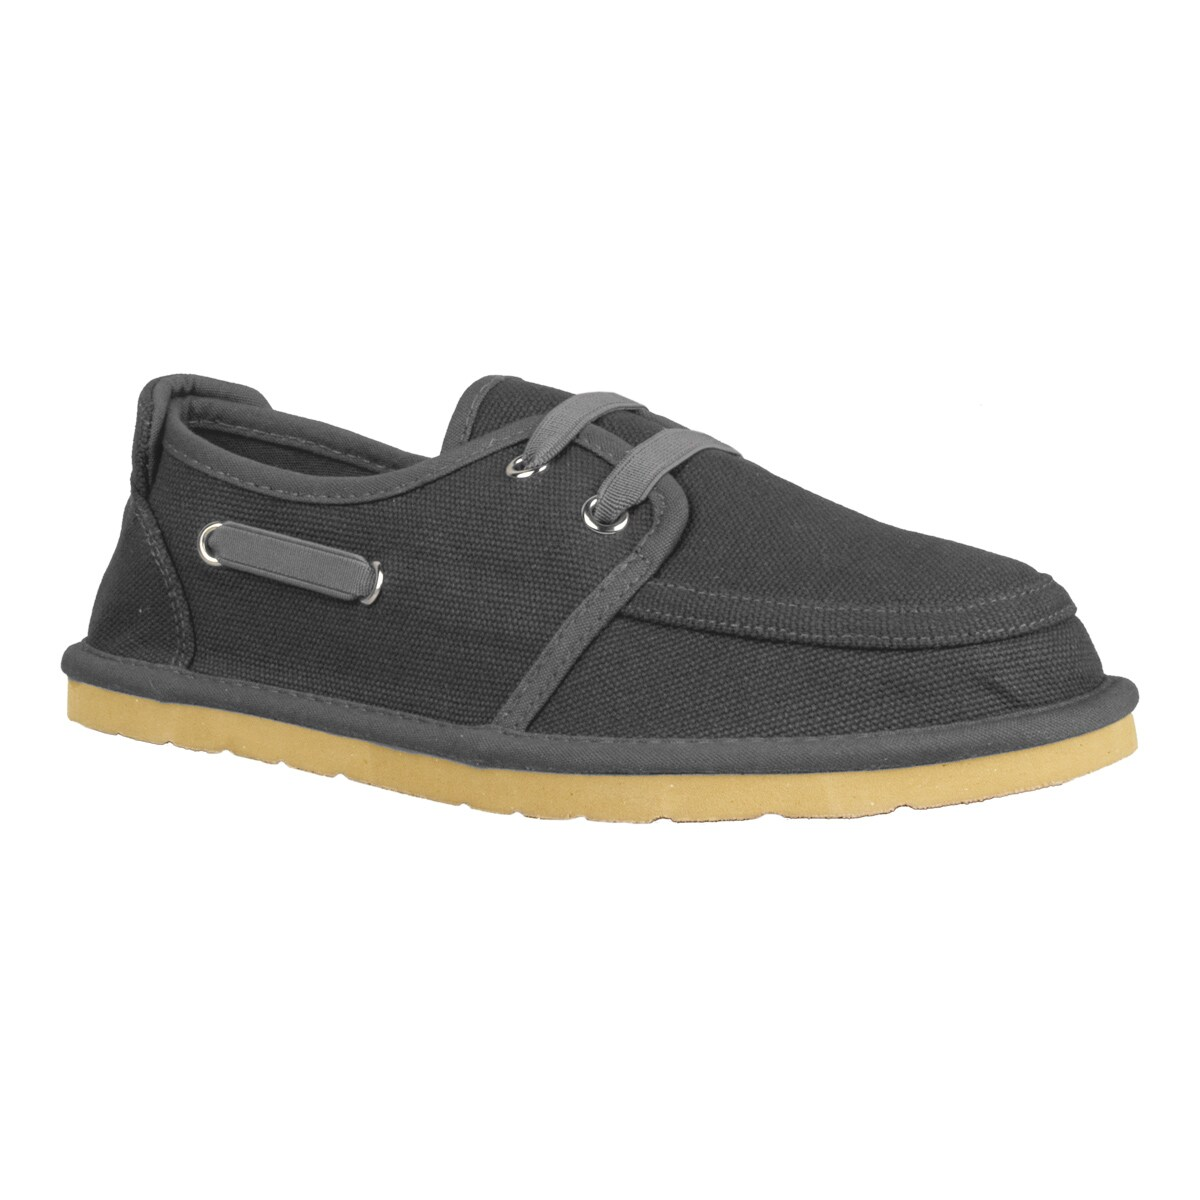 Lugz Men's 'Husk' Charcoal Canvas Slip-on Shoes